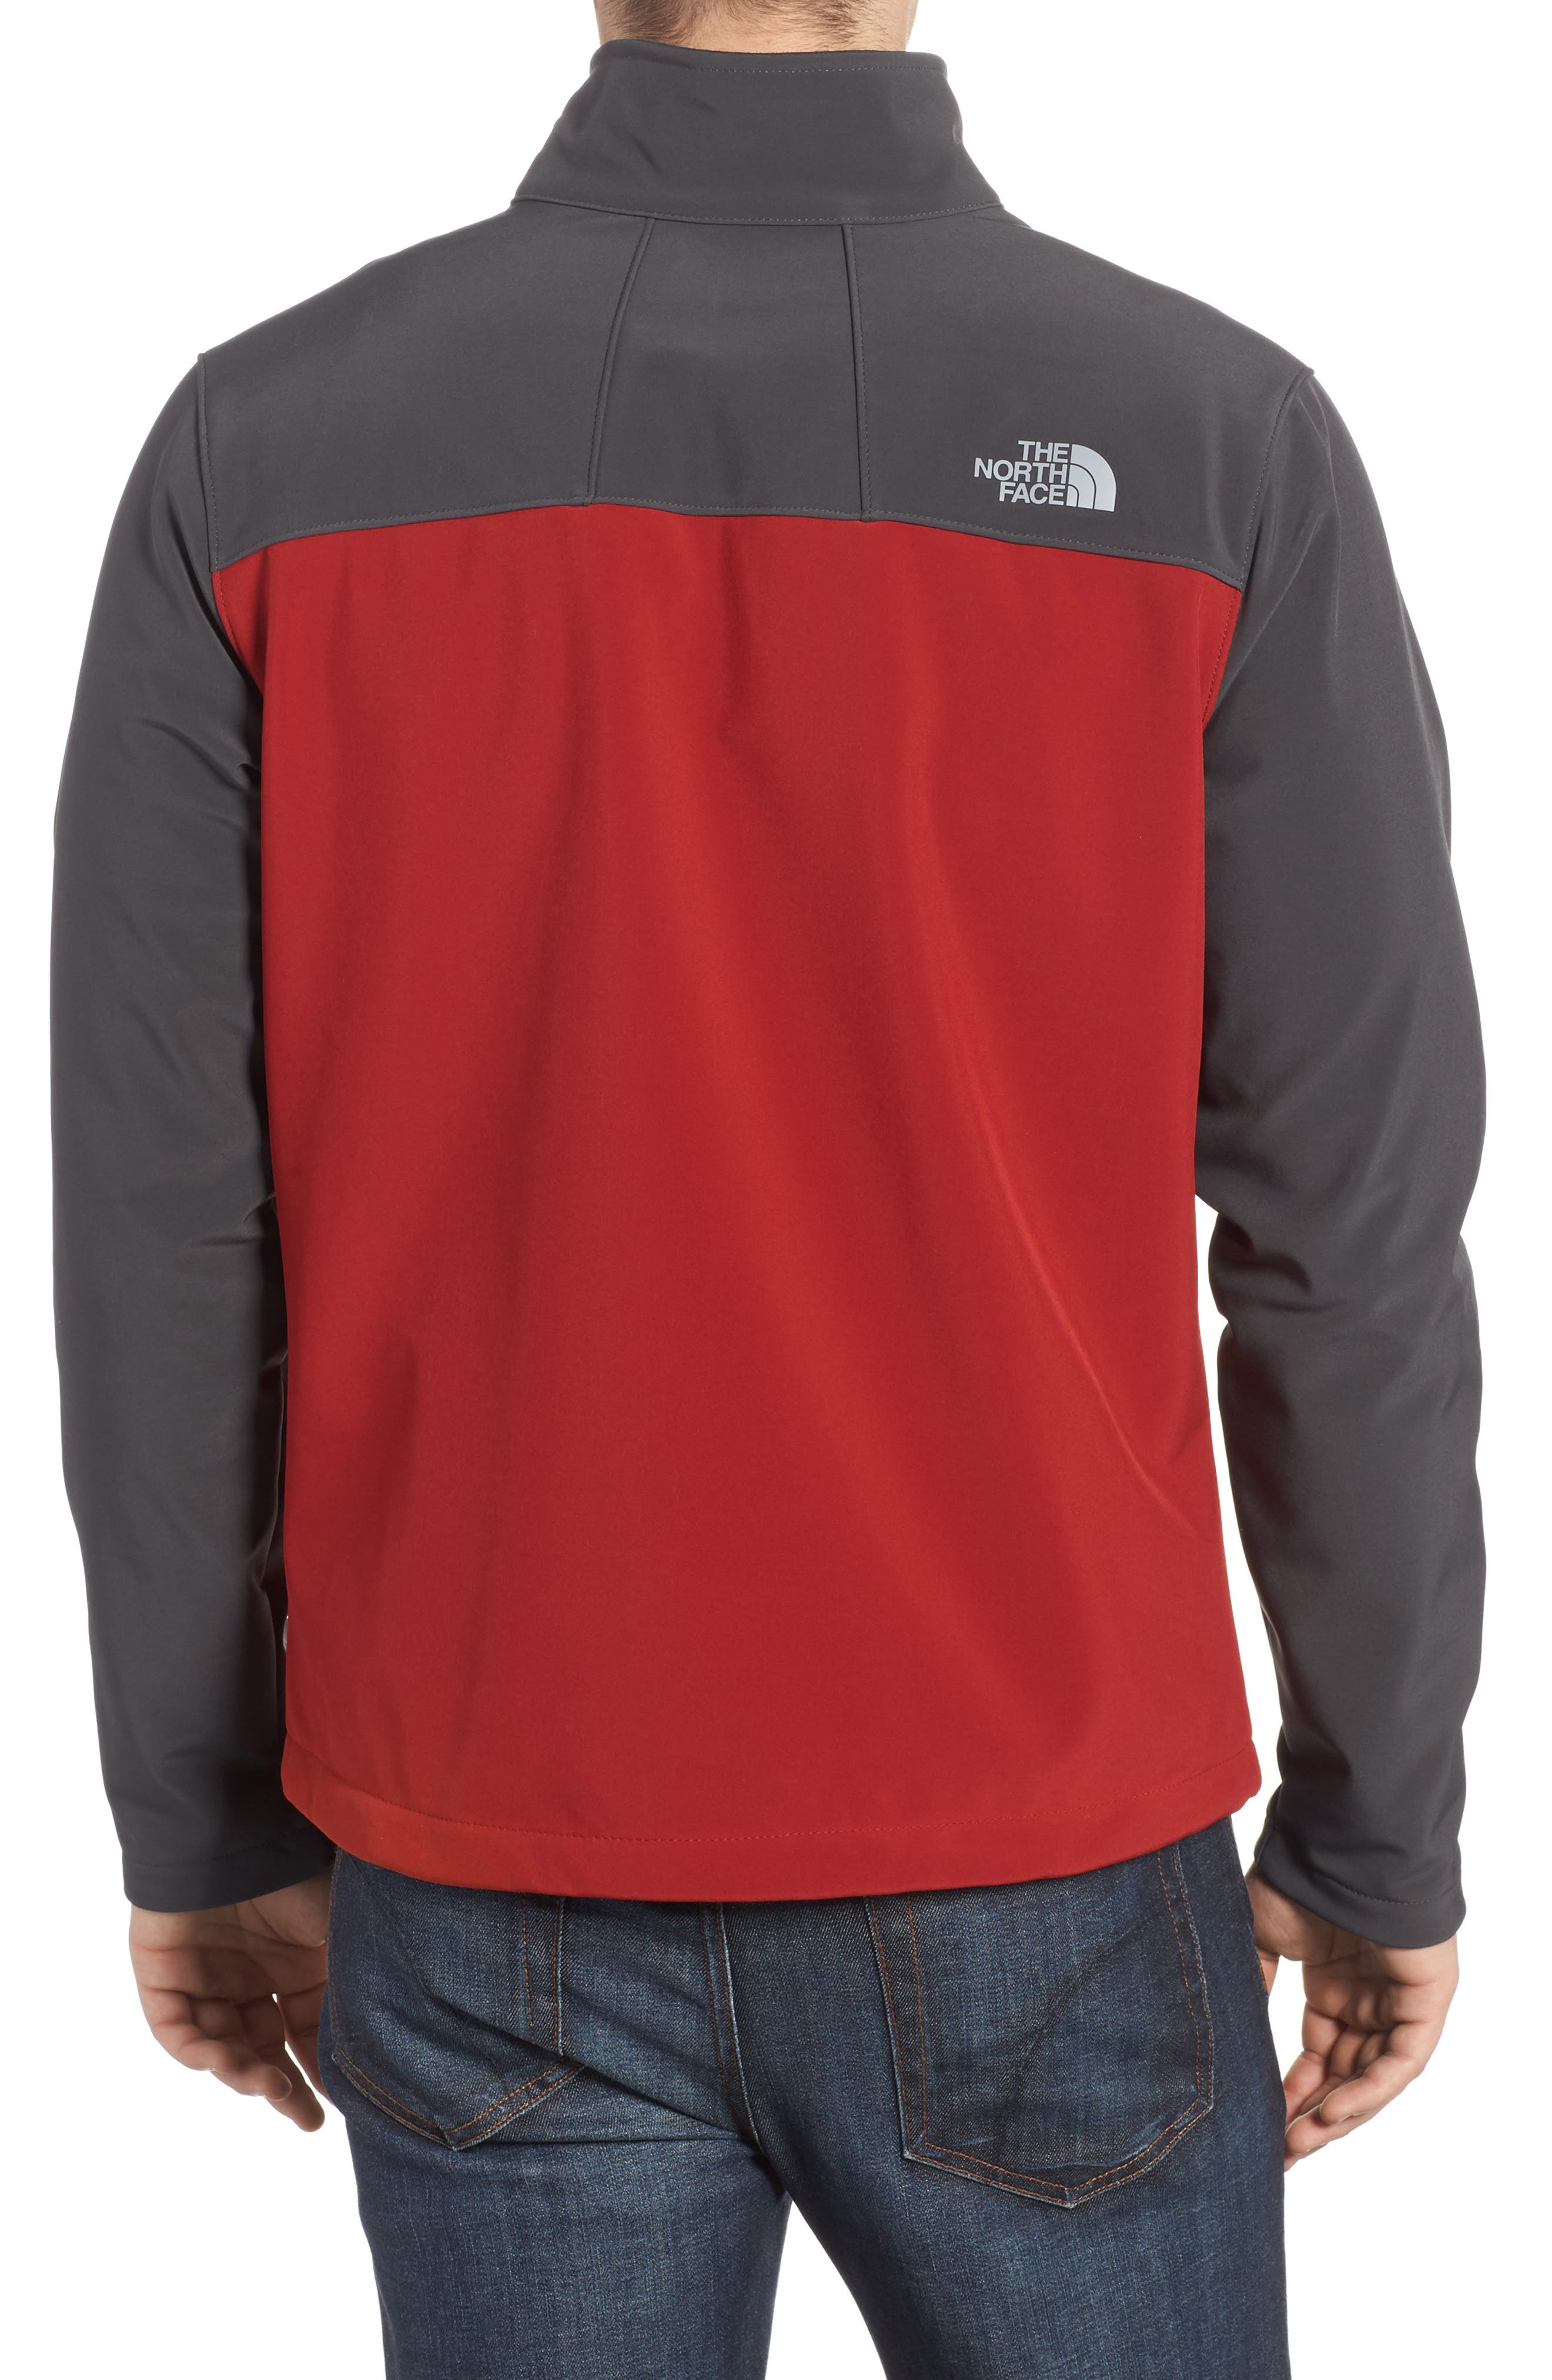 'Apex Bionic 2' Windproof & Water Resistant Soft Shell Jacket,                             Alternate thumbnail 2, color,                             Cardinal Red/ Asphalt Grey